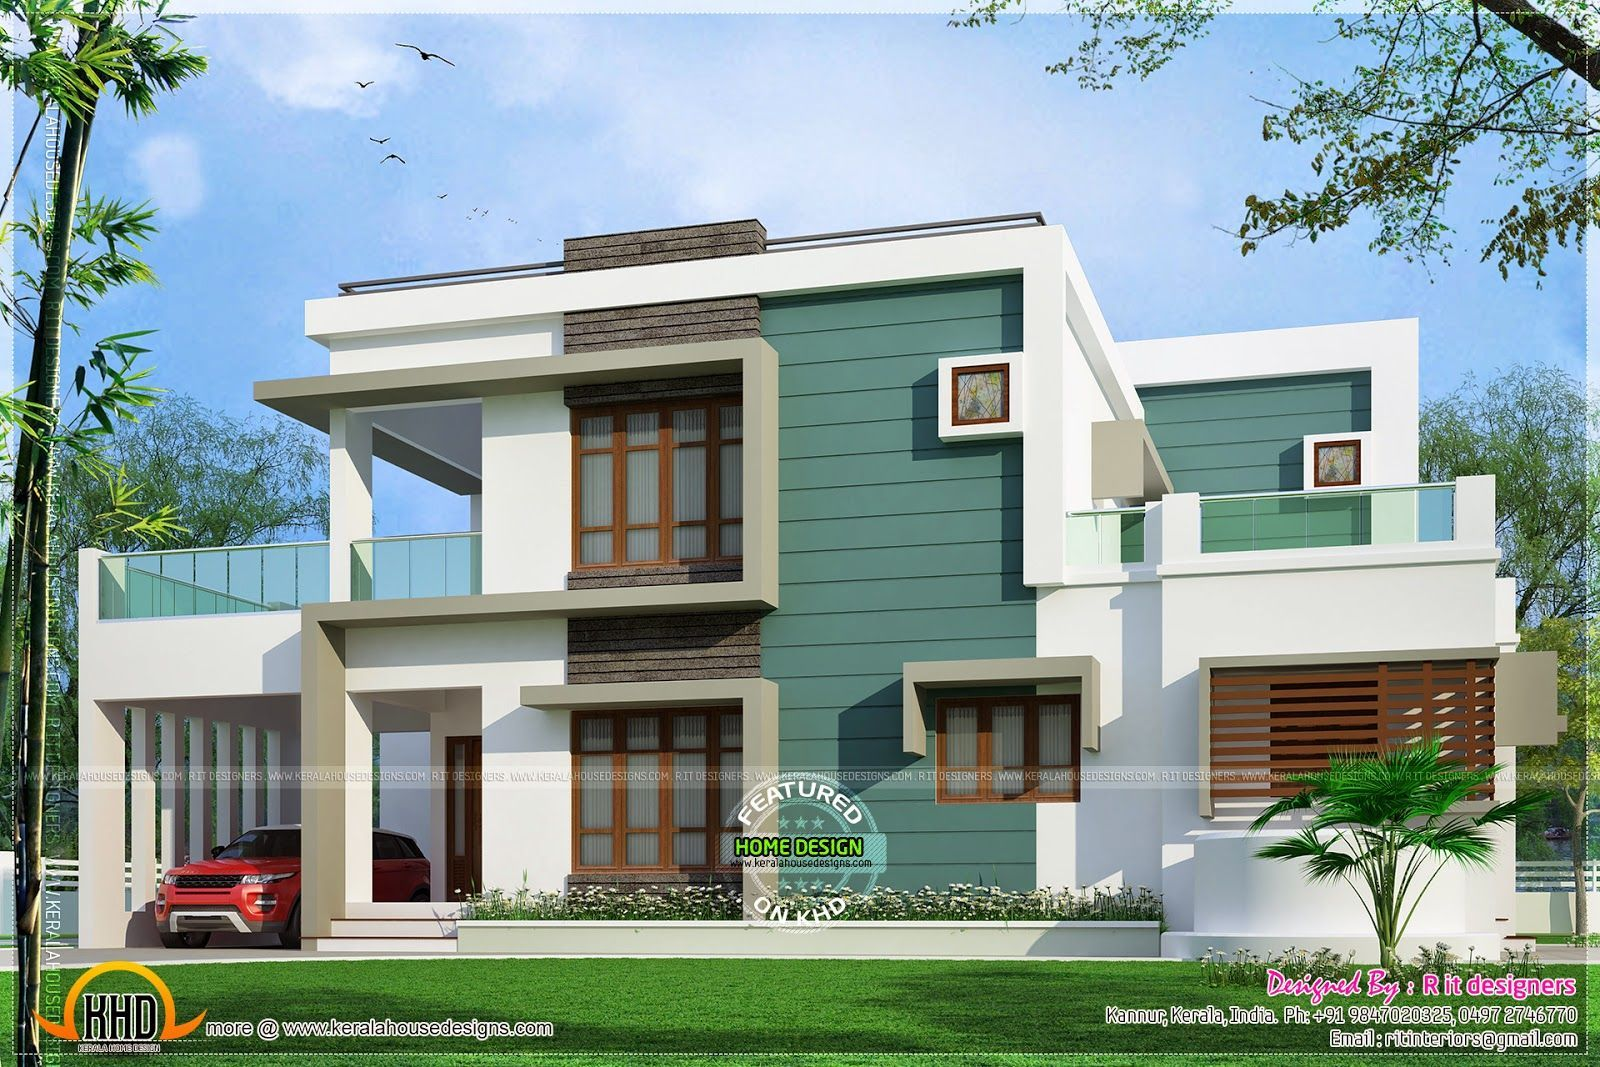 Kannur home design kerala home design and floor plans